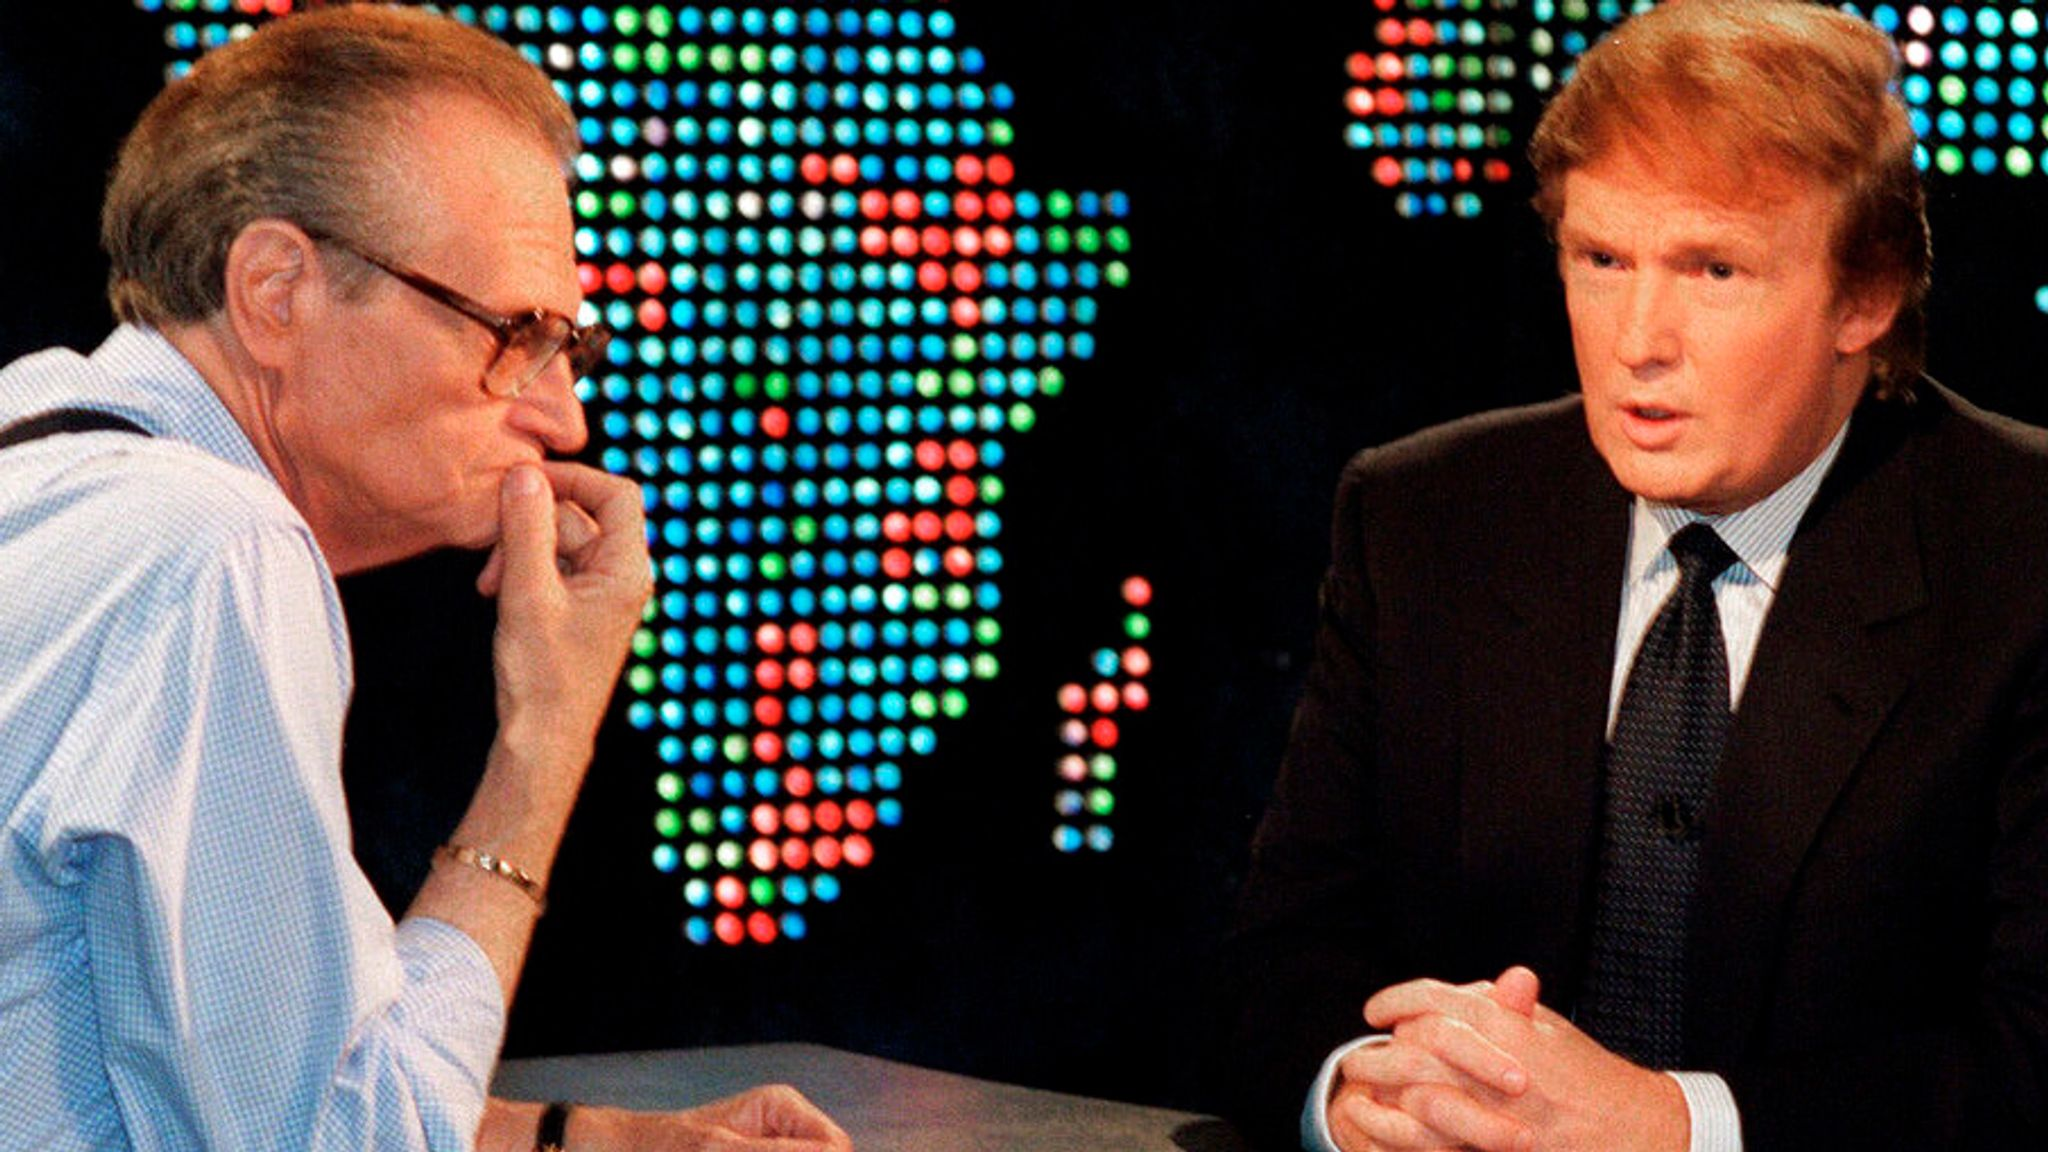 """Donald Trump, right, is interviewed by Larry King during a taping of """"Larry King Live,"""" Thursday, Oct, 7, 1999, in New York. Trump said he has formed an exploratory committee to help him determine whether he can win the White House as a Reform Party candidate. (AP Photo/Marty Lederhandler)"""